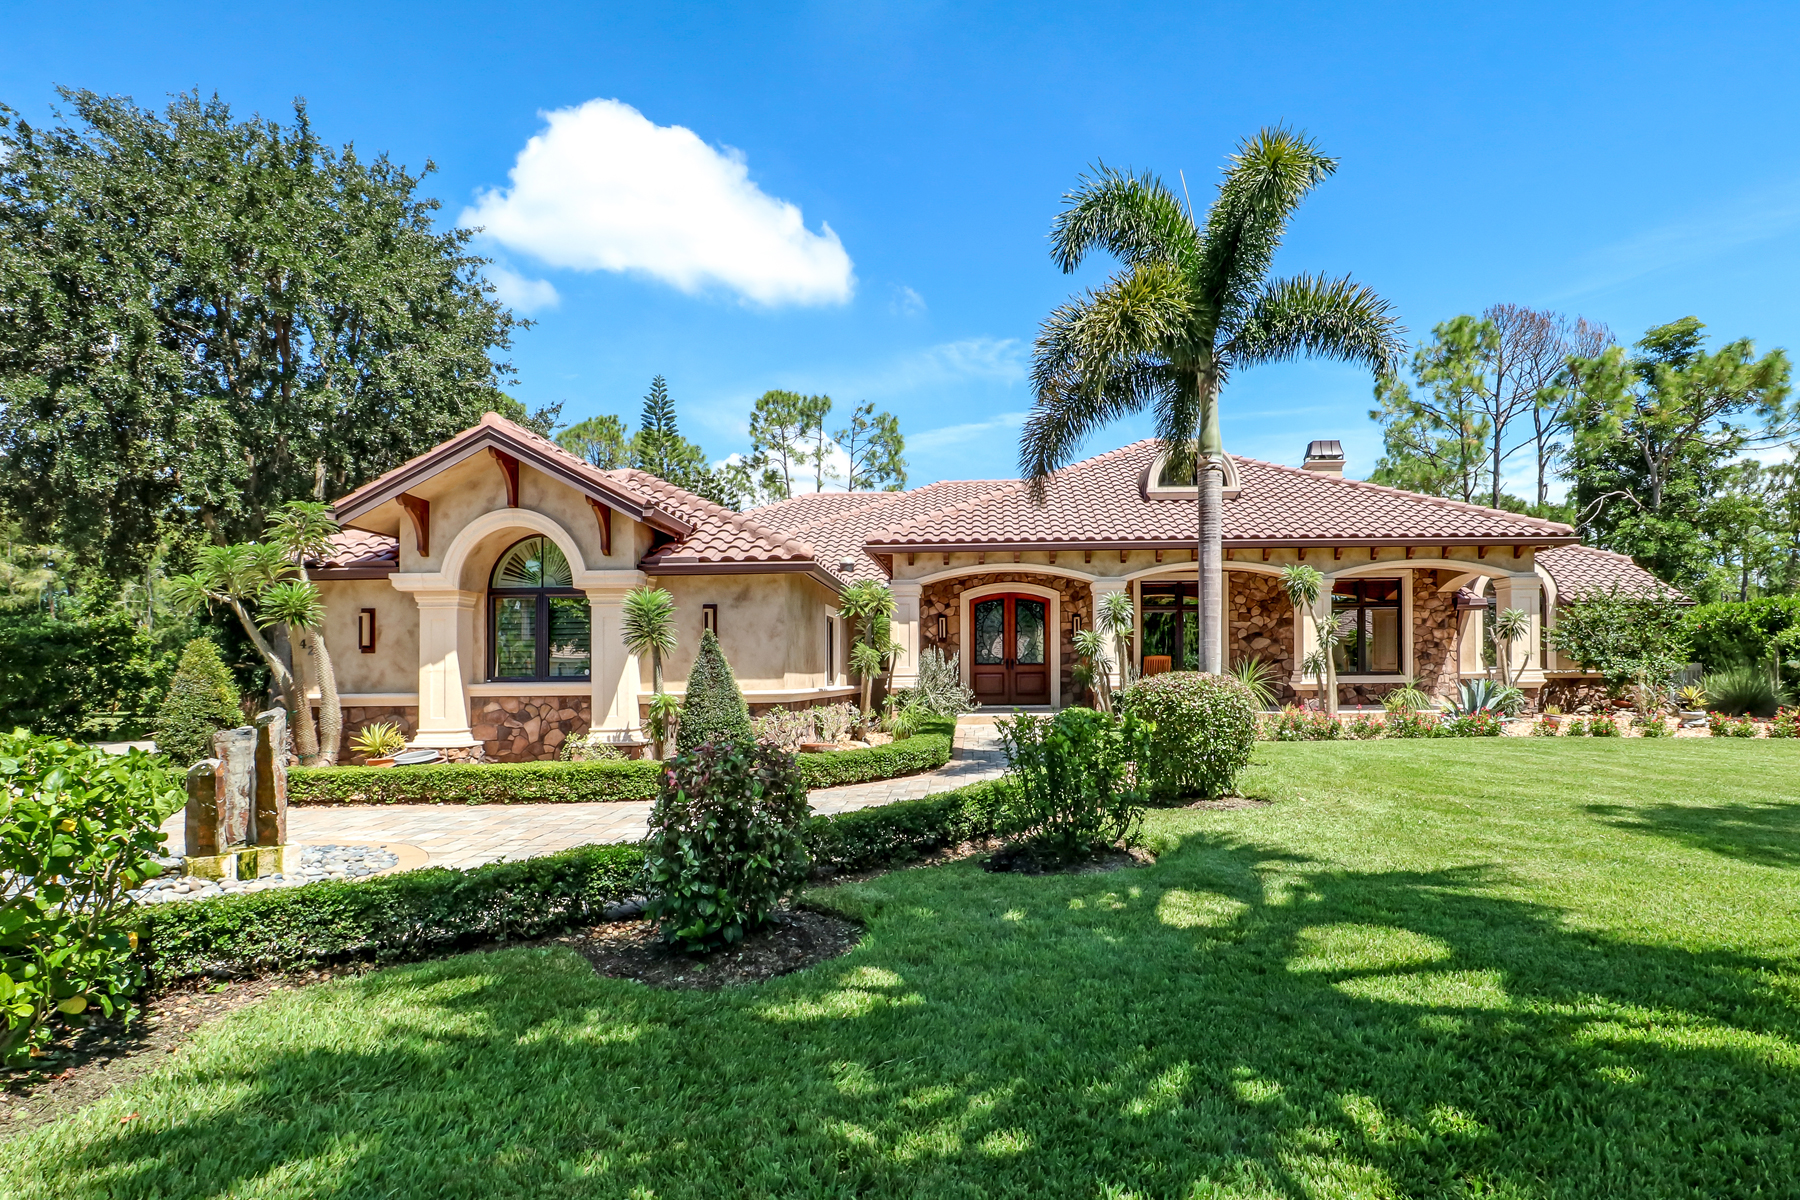 FLORIDA WEEKLY HOUSE HUNTING